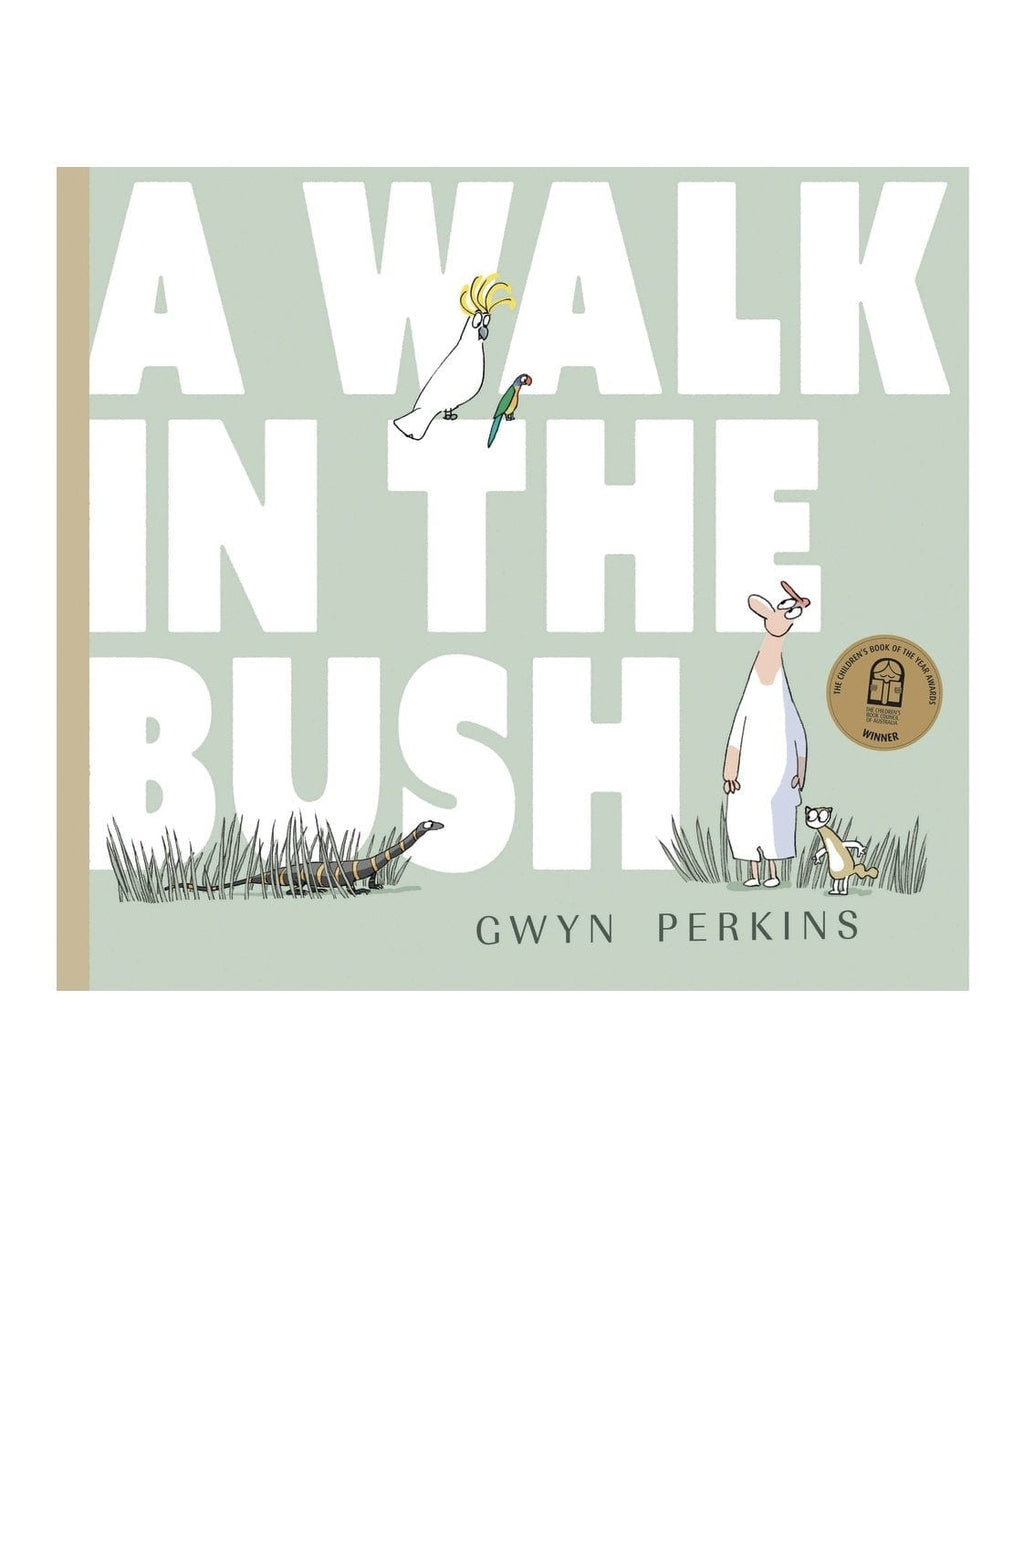 A Walk In The Bush by Gwyn Perkins - Hello Little Birdie